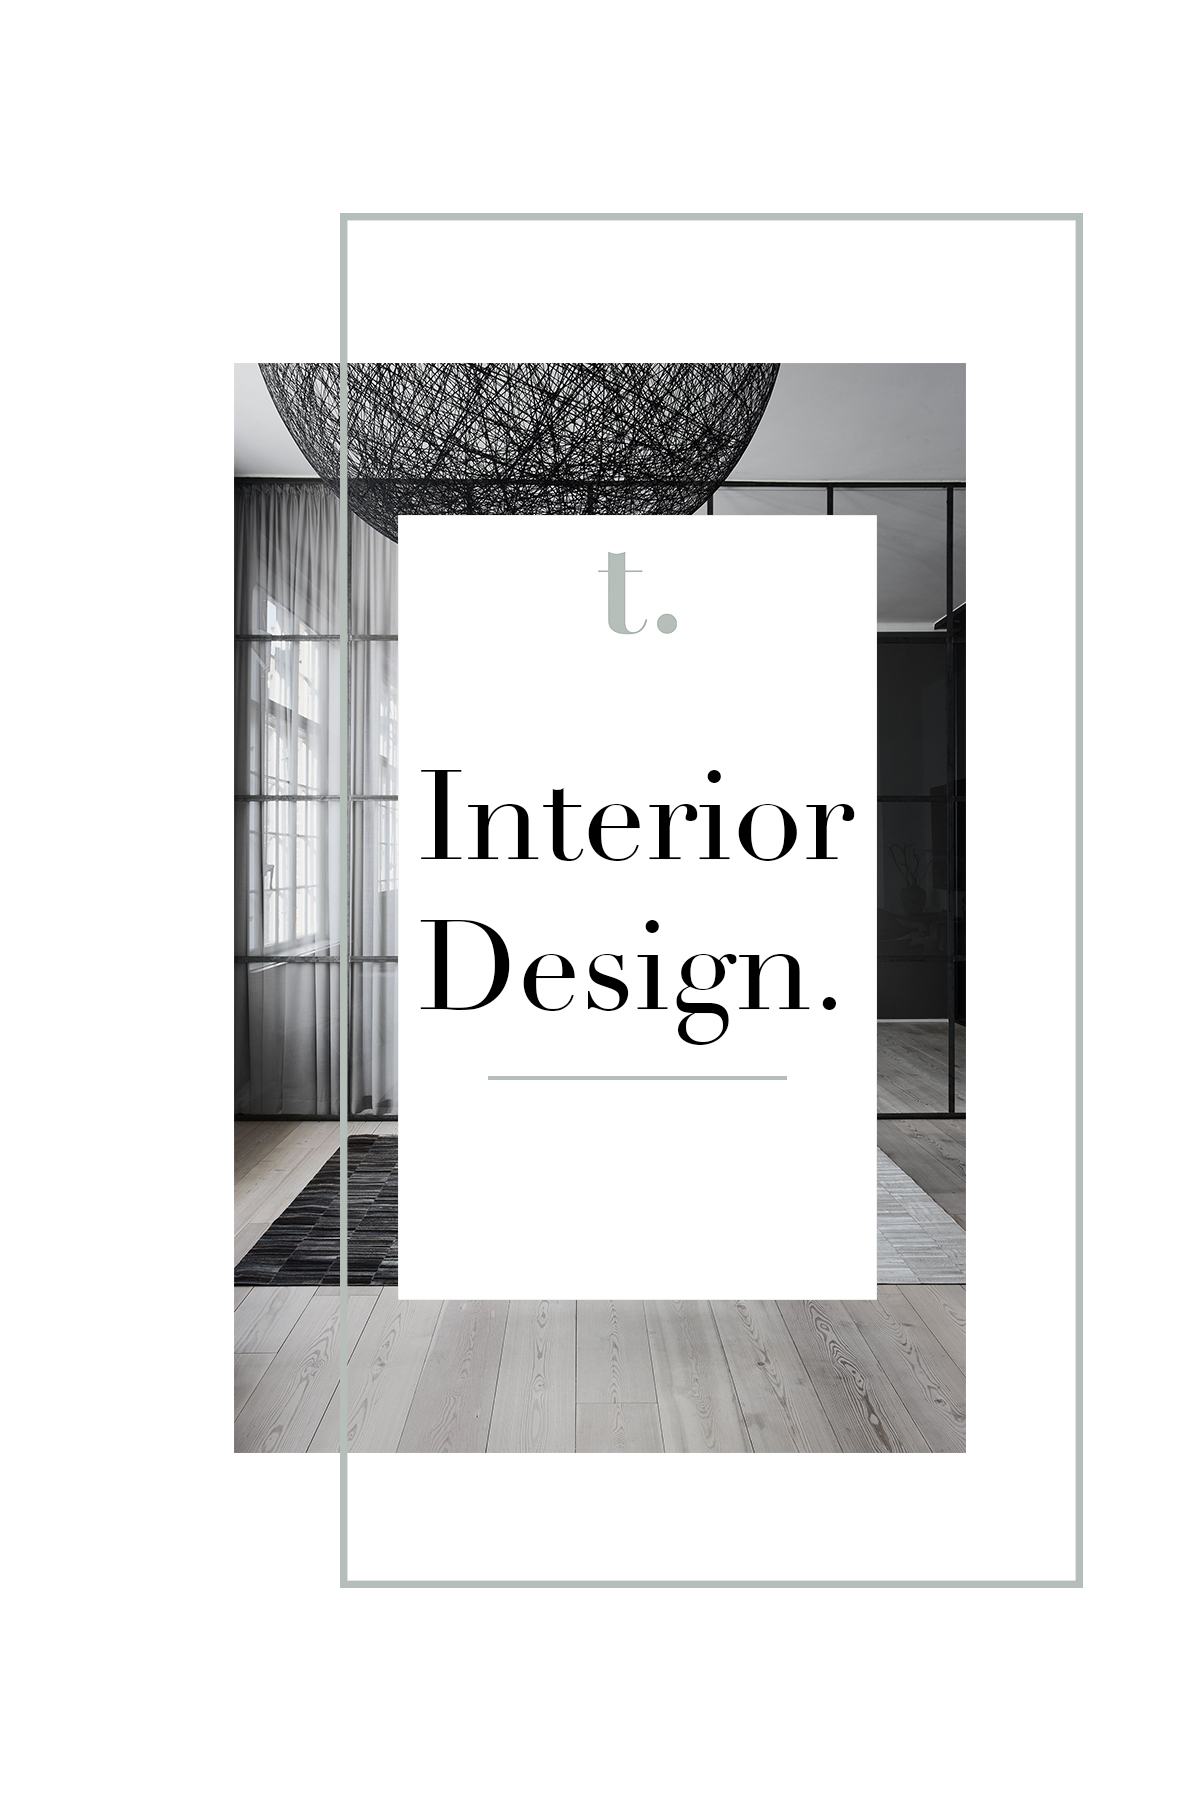 Interior design image.jpg